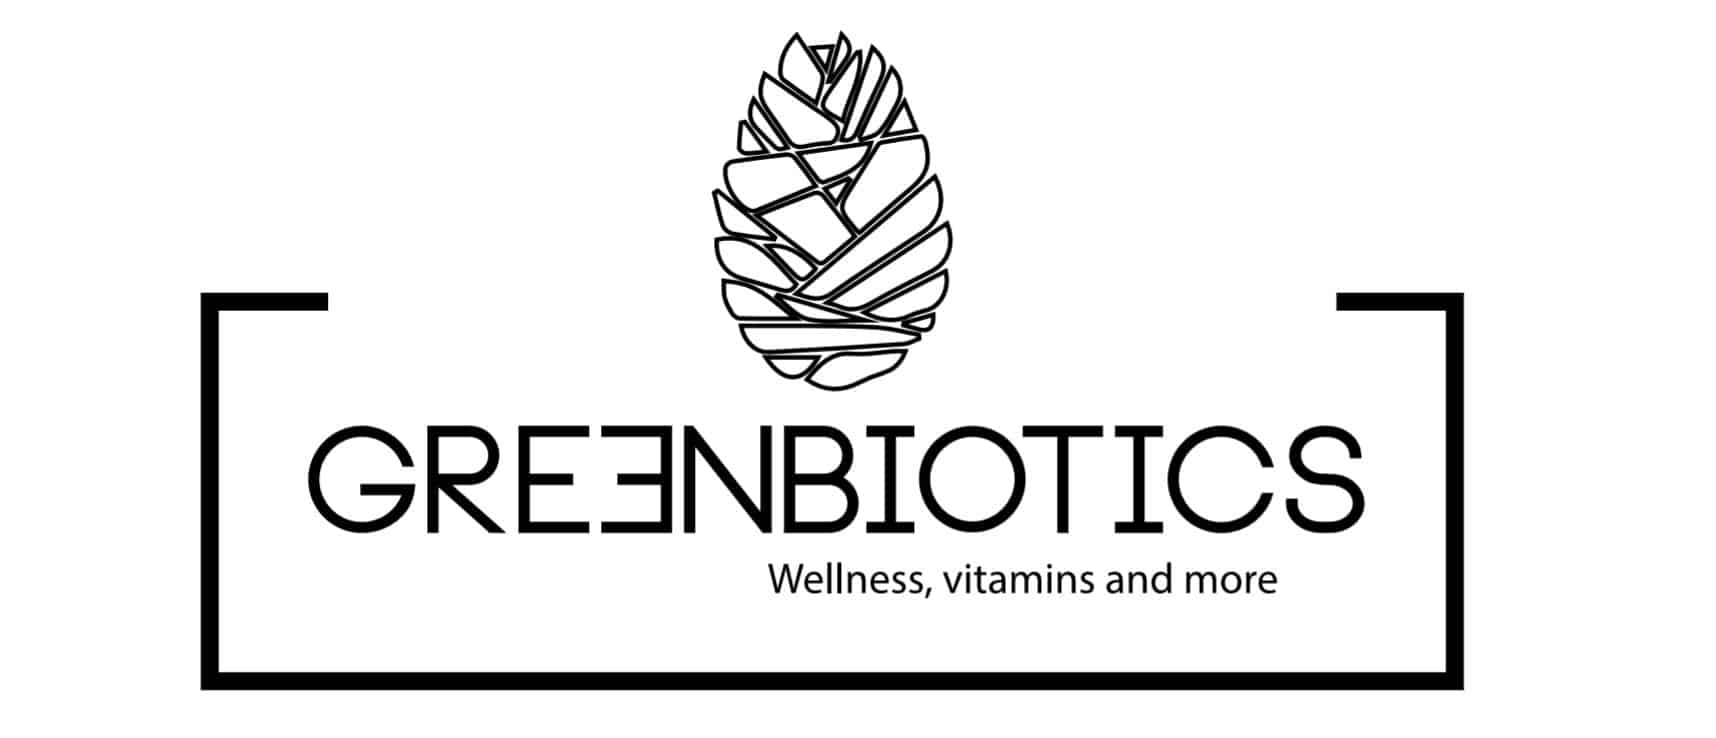 GreenBiotics logo